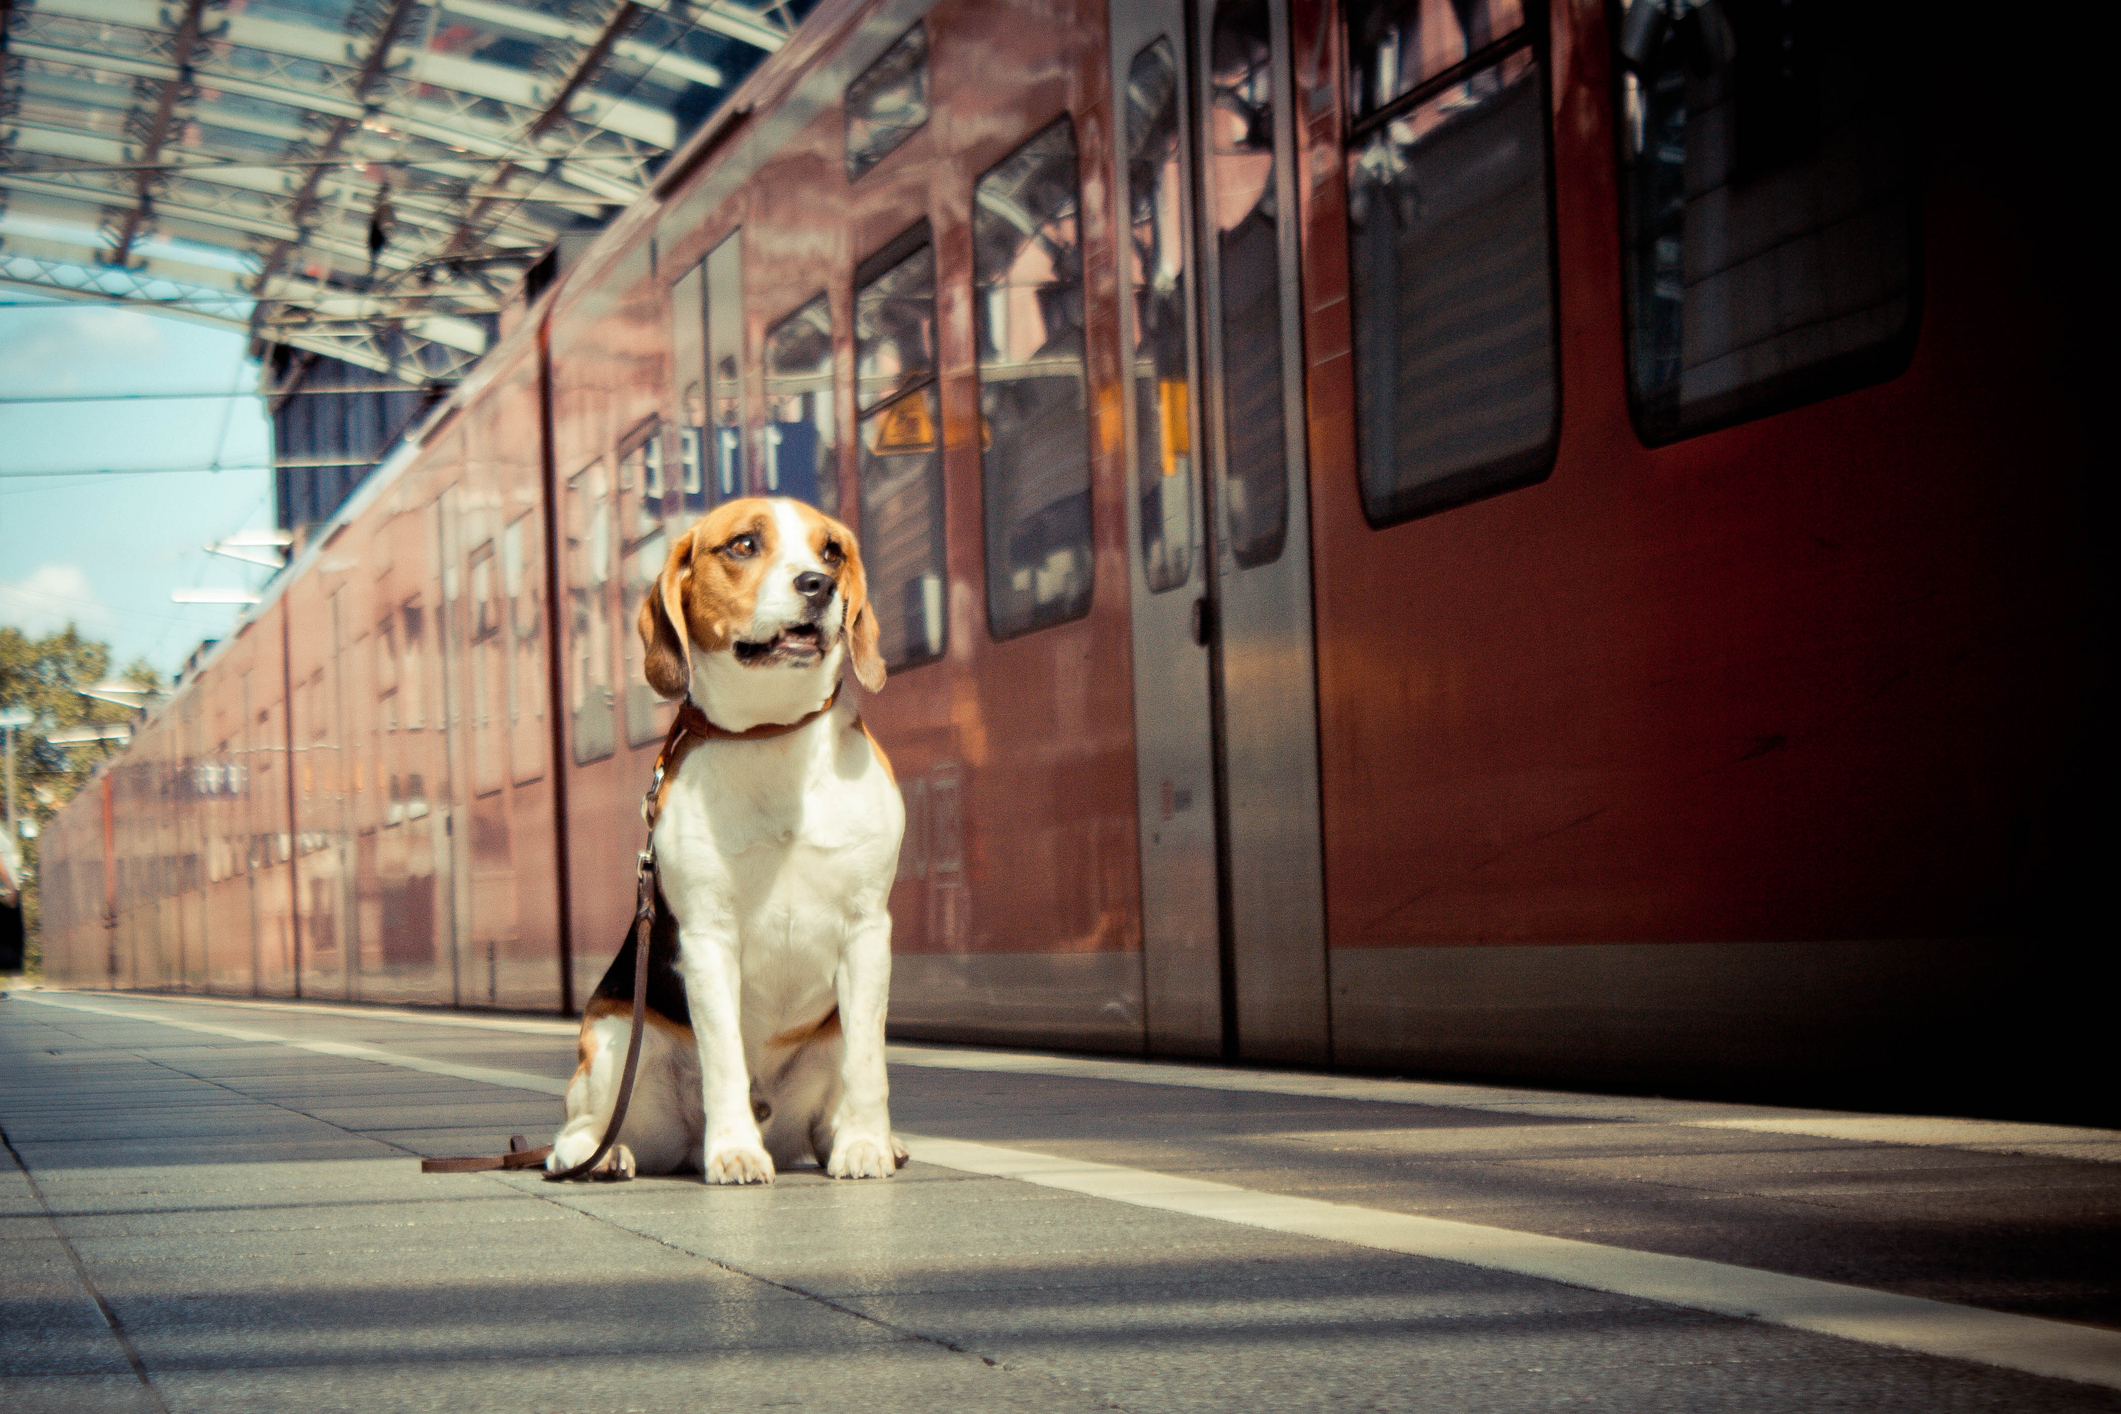 Dogs can now ride public transport in Paris. Image: Benita Hartmann - Tierfotografie